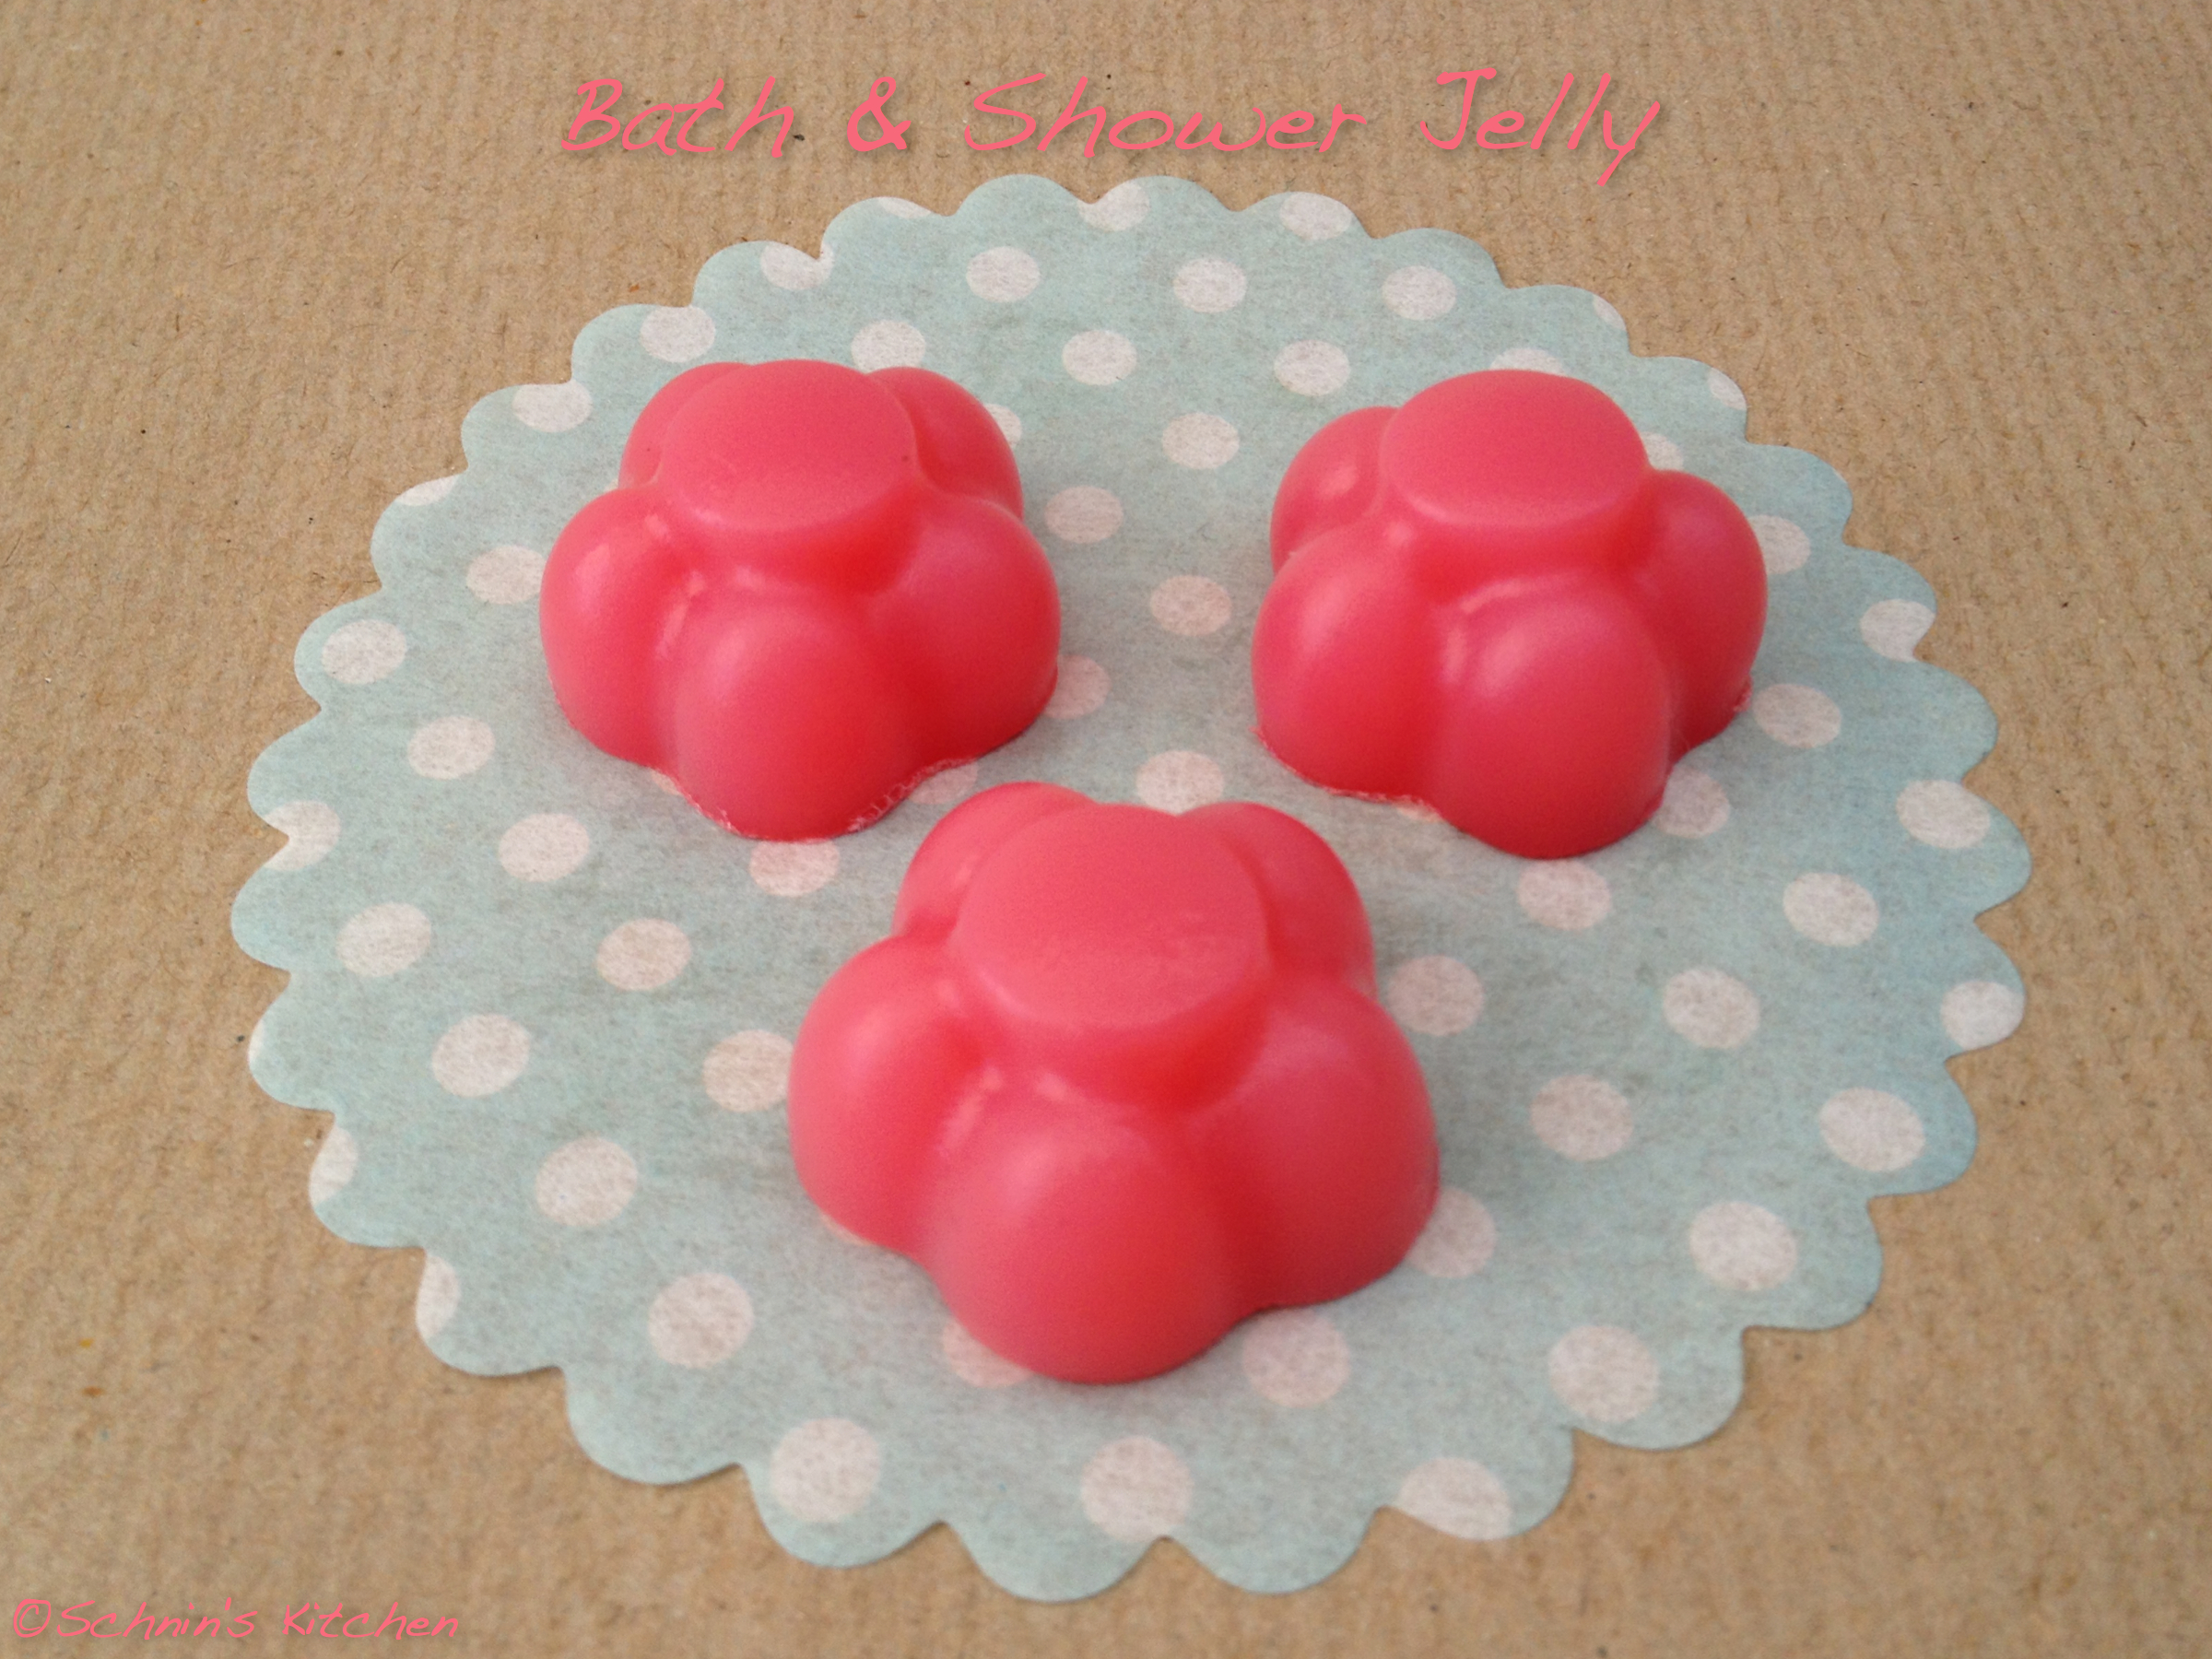 Bath & Shower Jelly